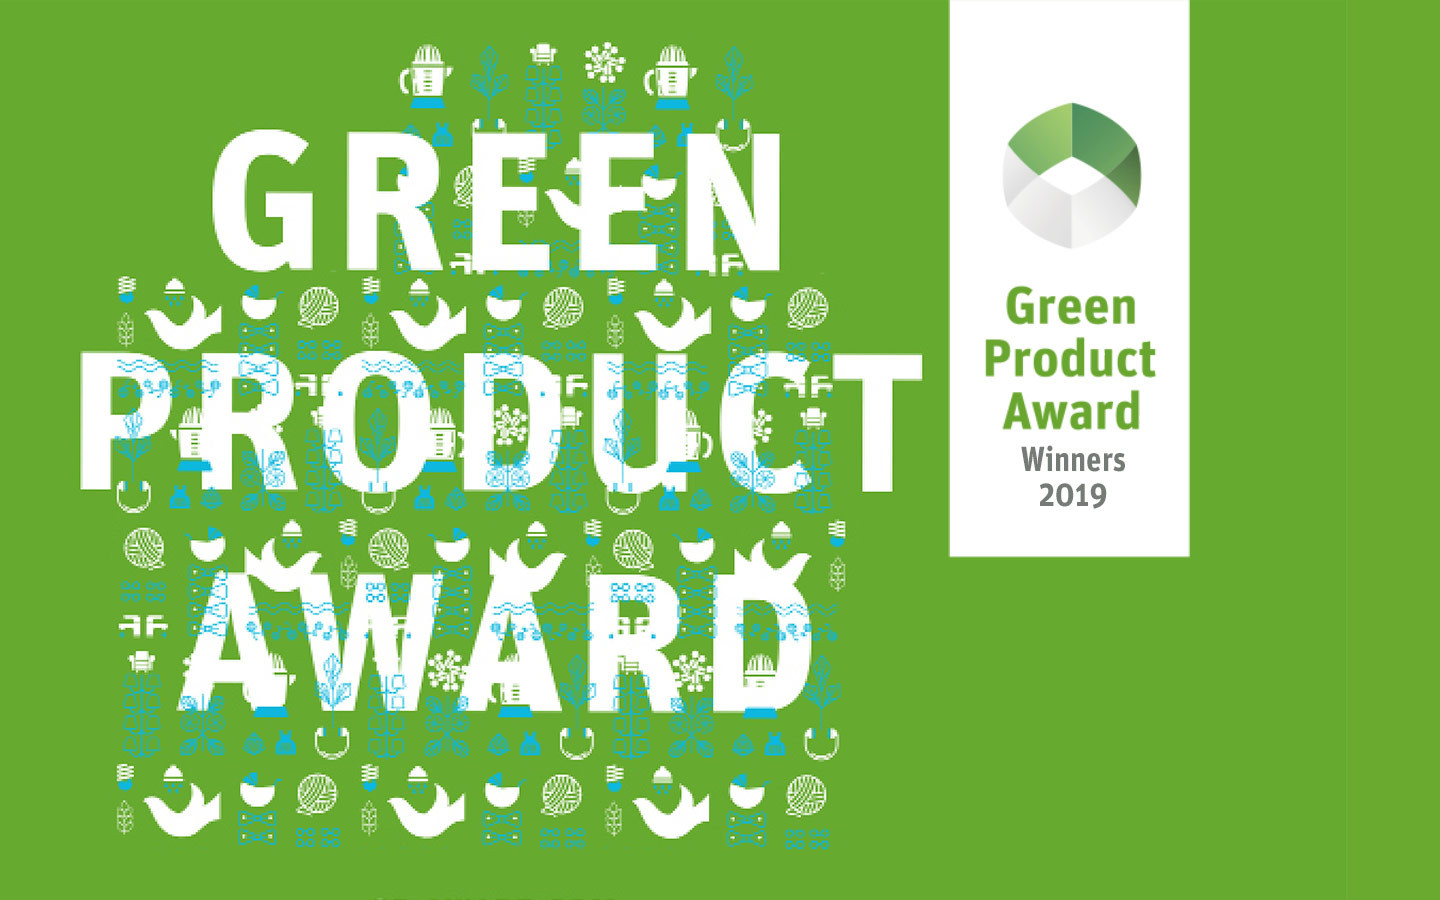 Green Product Award - Winners 2019